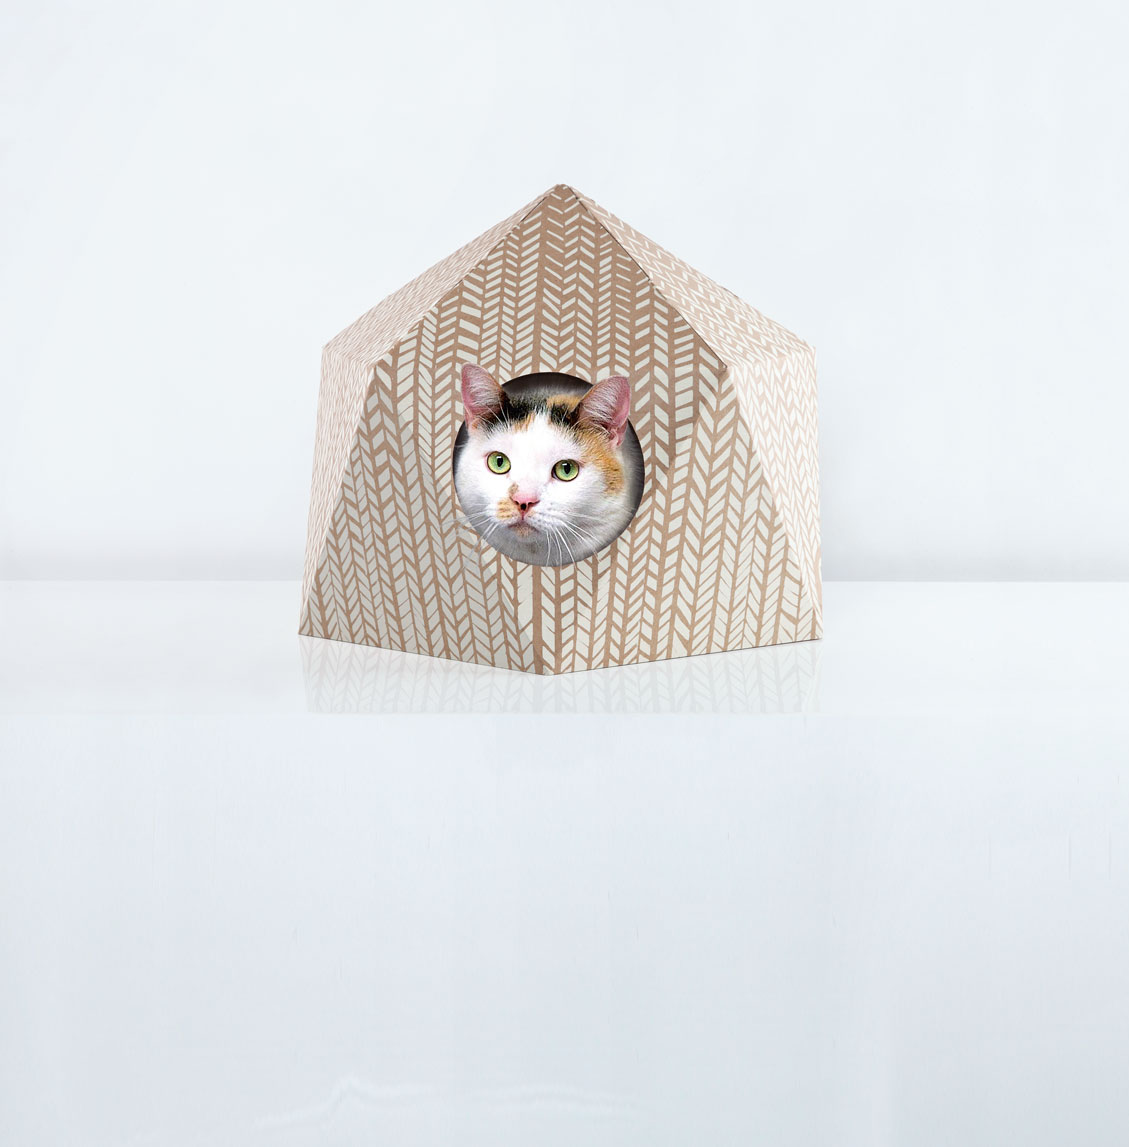 Butterfly poses in The Cat Cube by Delphine Courier from Pet-tecture